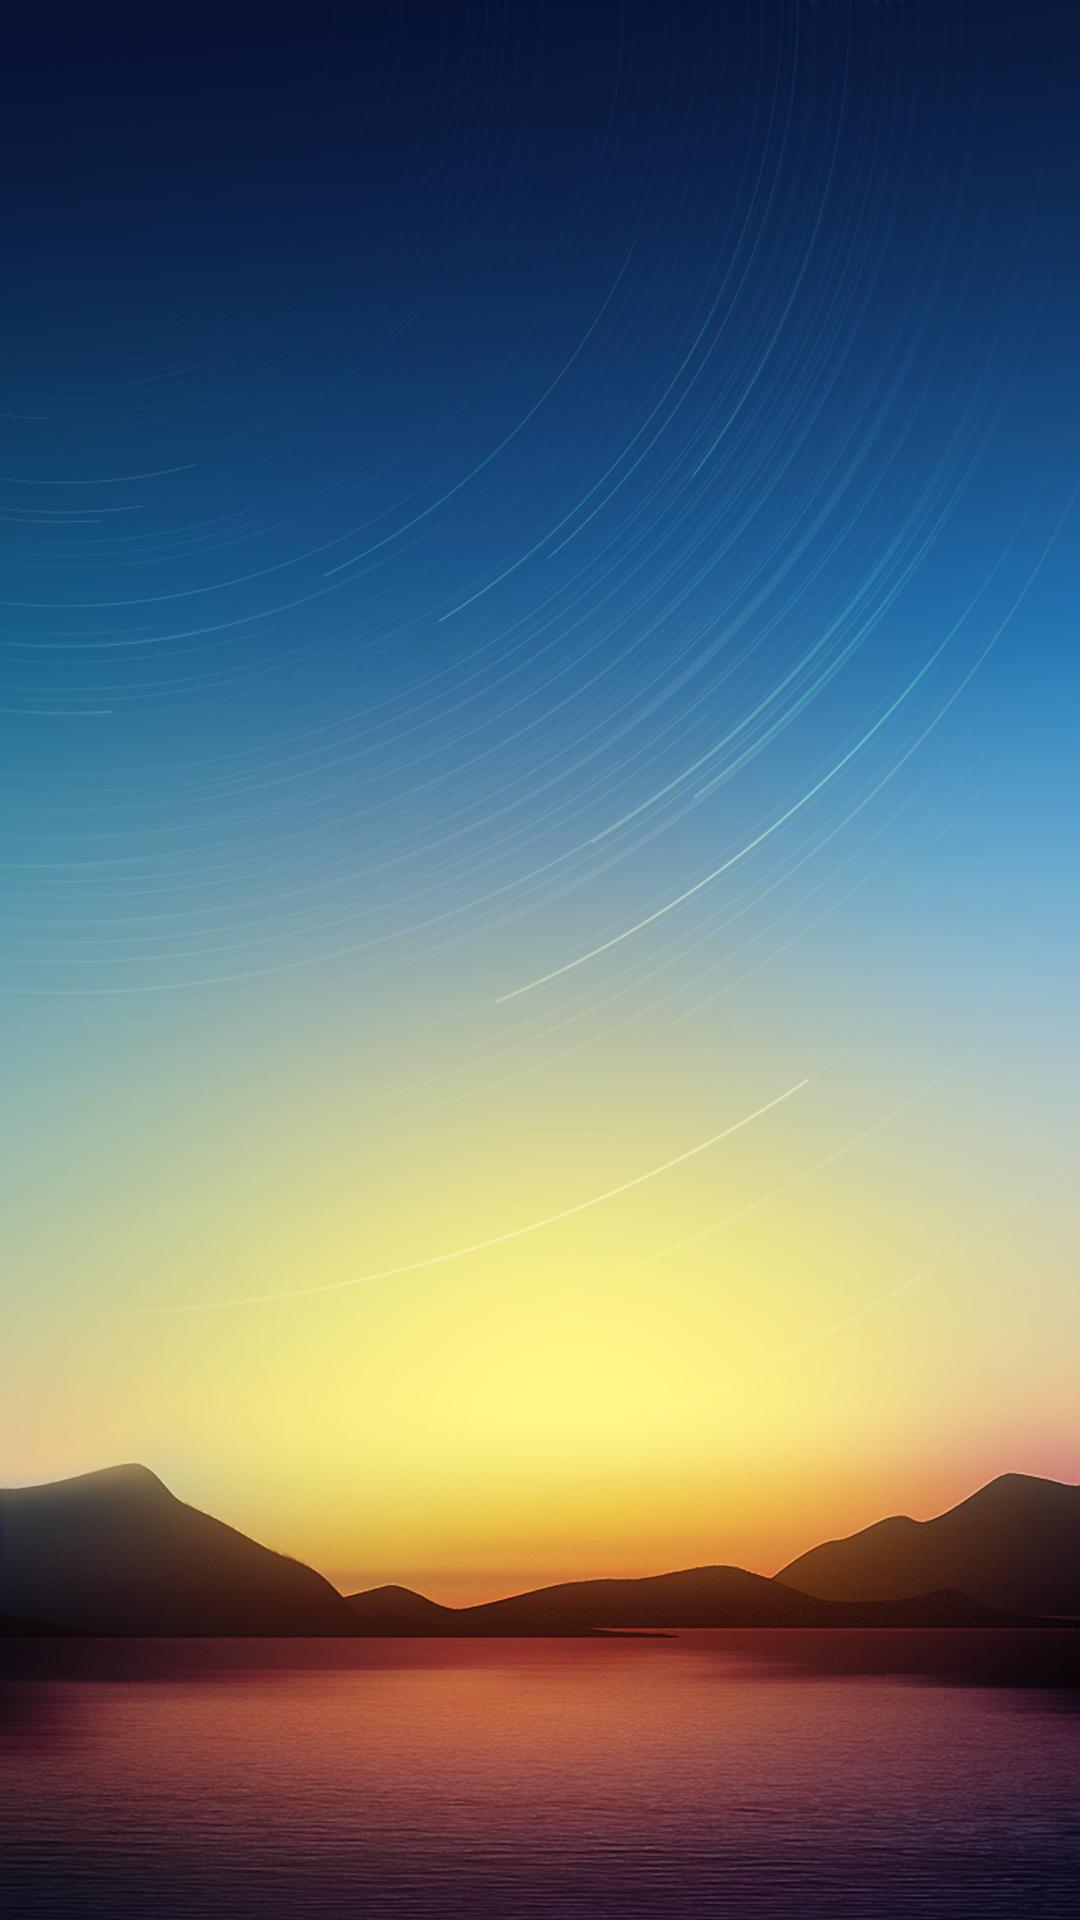 Wallpaper Phone Size